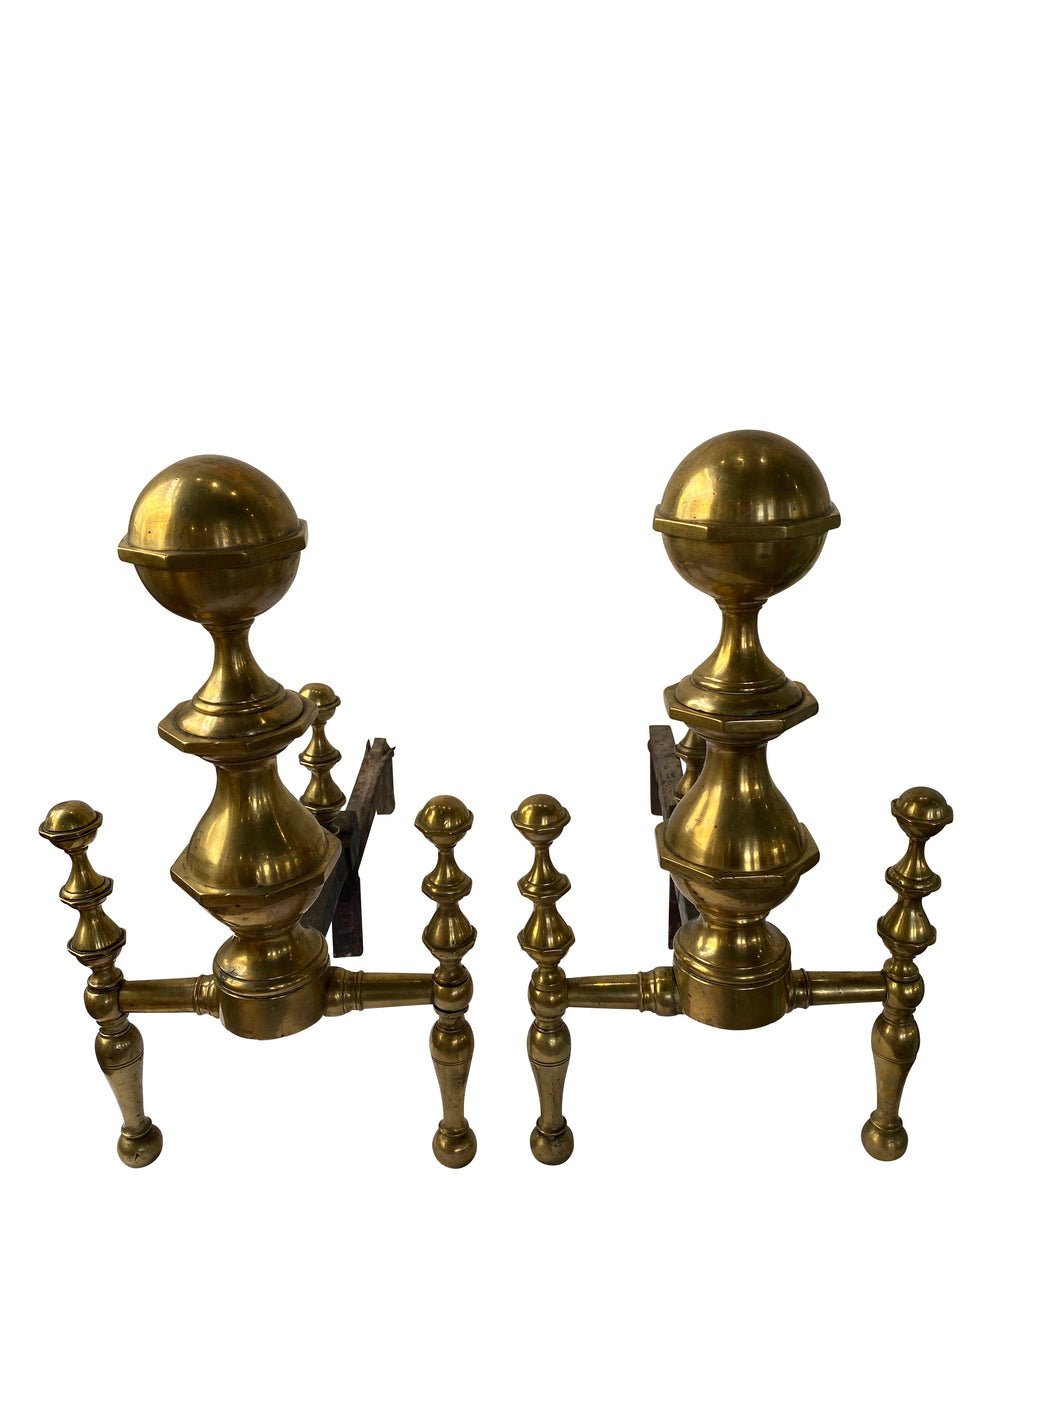 Antique English Brass Andirons